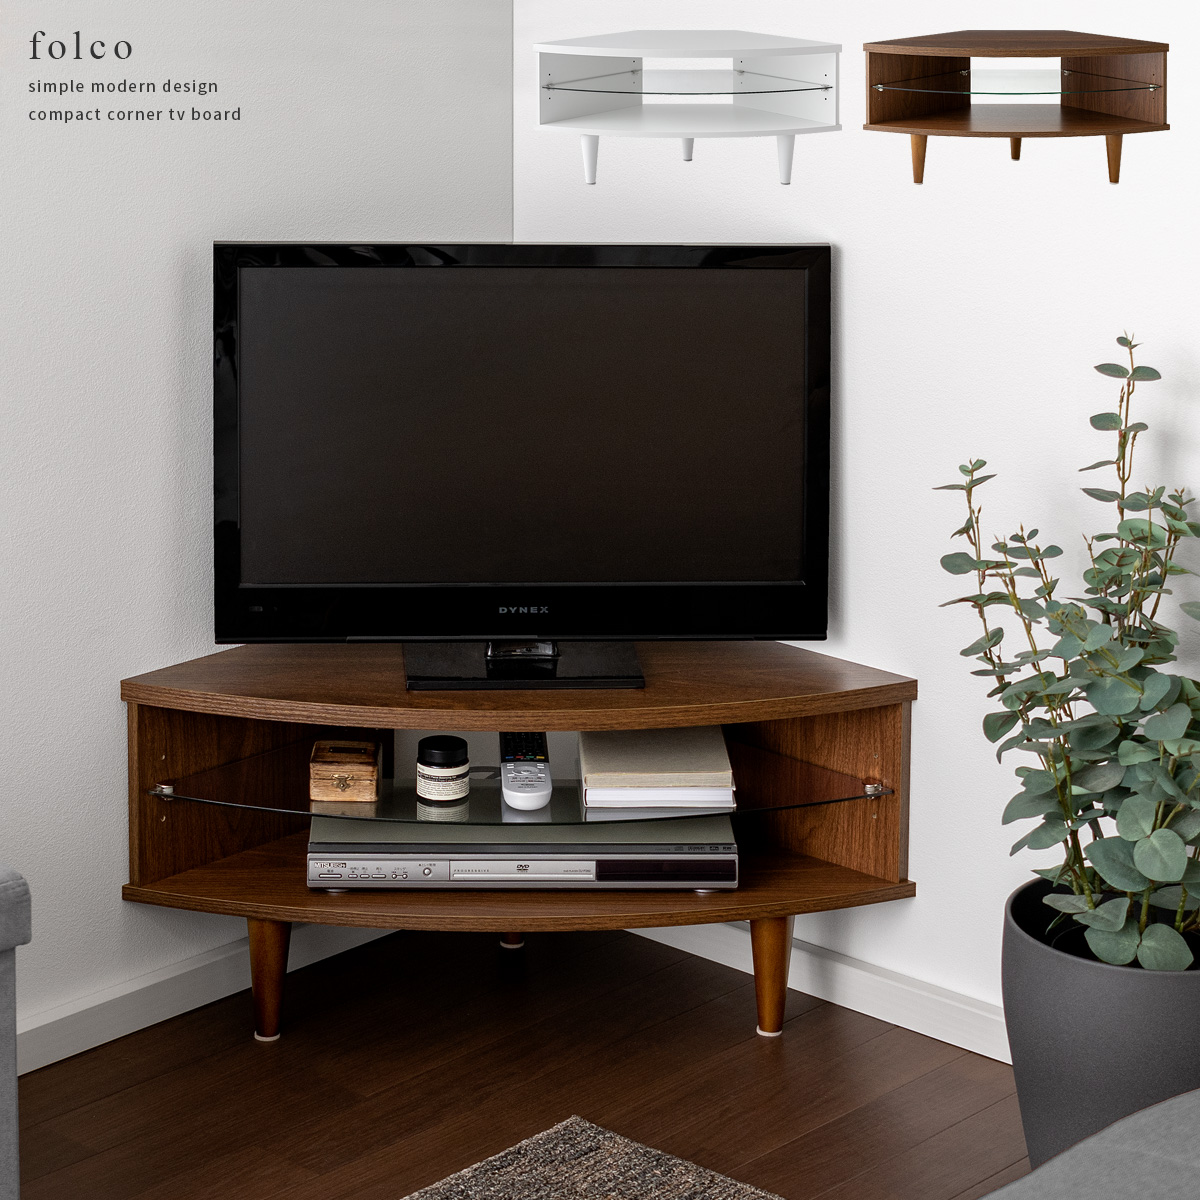 Tv Units Corner Snack Make Stand Board Scandinavian Simple Av Storage Furniture 26 Inch Folco Stylish Folk 80 Cm